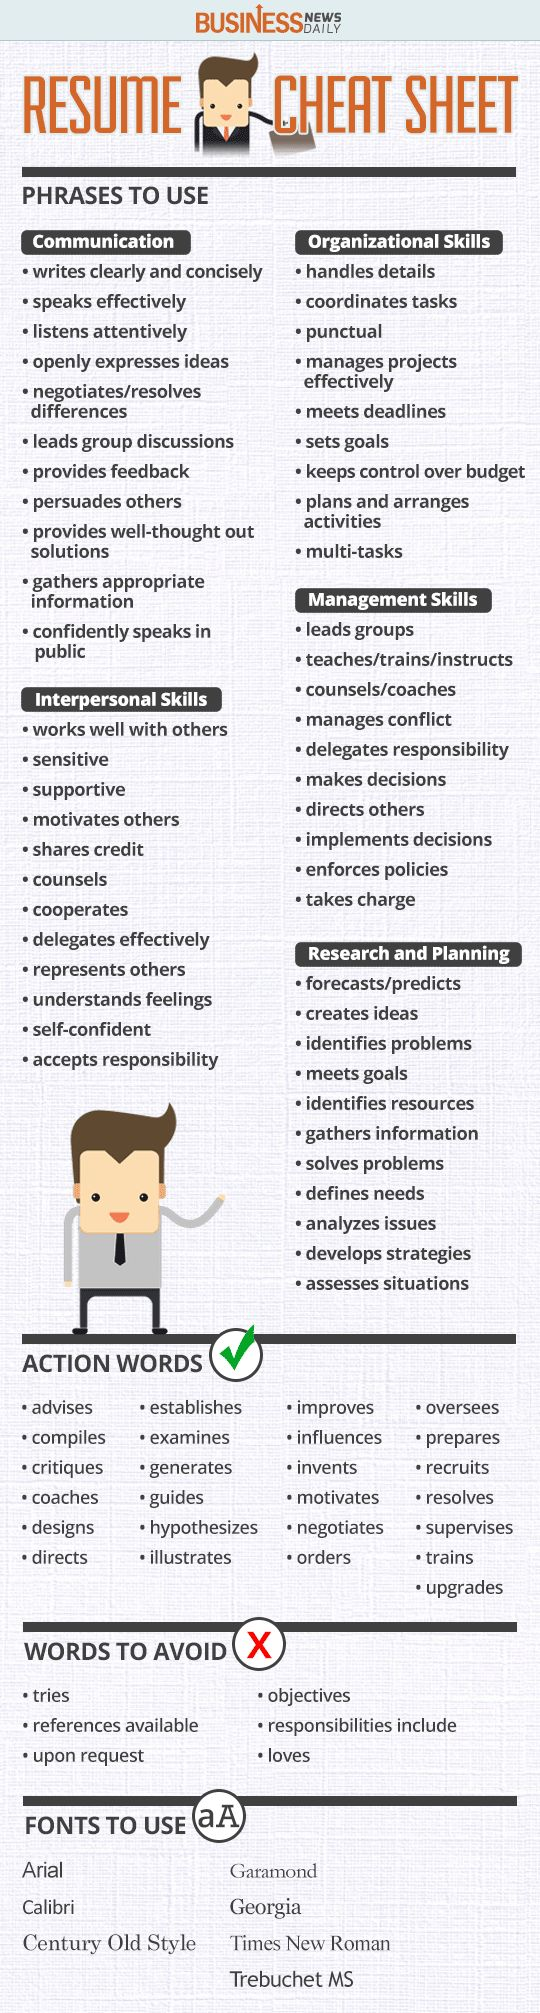 Opposenewapstandardsus  Remarkable  Ideas About Resume On Pinterest  Cv Format Resume Cv And  With Extraordinary Resume Cheat Sheet Infographic Andrews Almost Done With A Complete Unit On Employment Which With Astonishing First Job Resume No Experience Also Order Selector Resume In Addition Principal Resumes And Food Service Director Resume As Well As Management Skills On Resume Additionally First Year Elementary Teacher Resume From Pinterestcom With Opposenewapstandardsus  Extraordinary  Ideas About Resume On Pinterest  Cv Format Resume Cv And  With Astonishing Resume Cheat Sheet Infographic Andrews Almost Done With A Complete Unit On Employment Which And Remarkable First Job Resume No Experience Also Order Selector Resume In Addition Principal Resumes From Pinterestcom